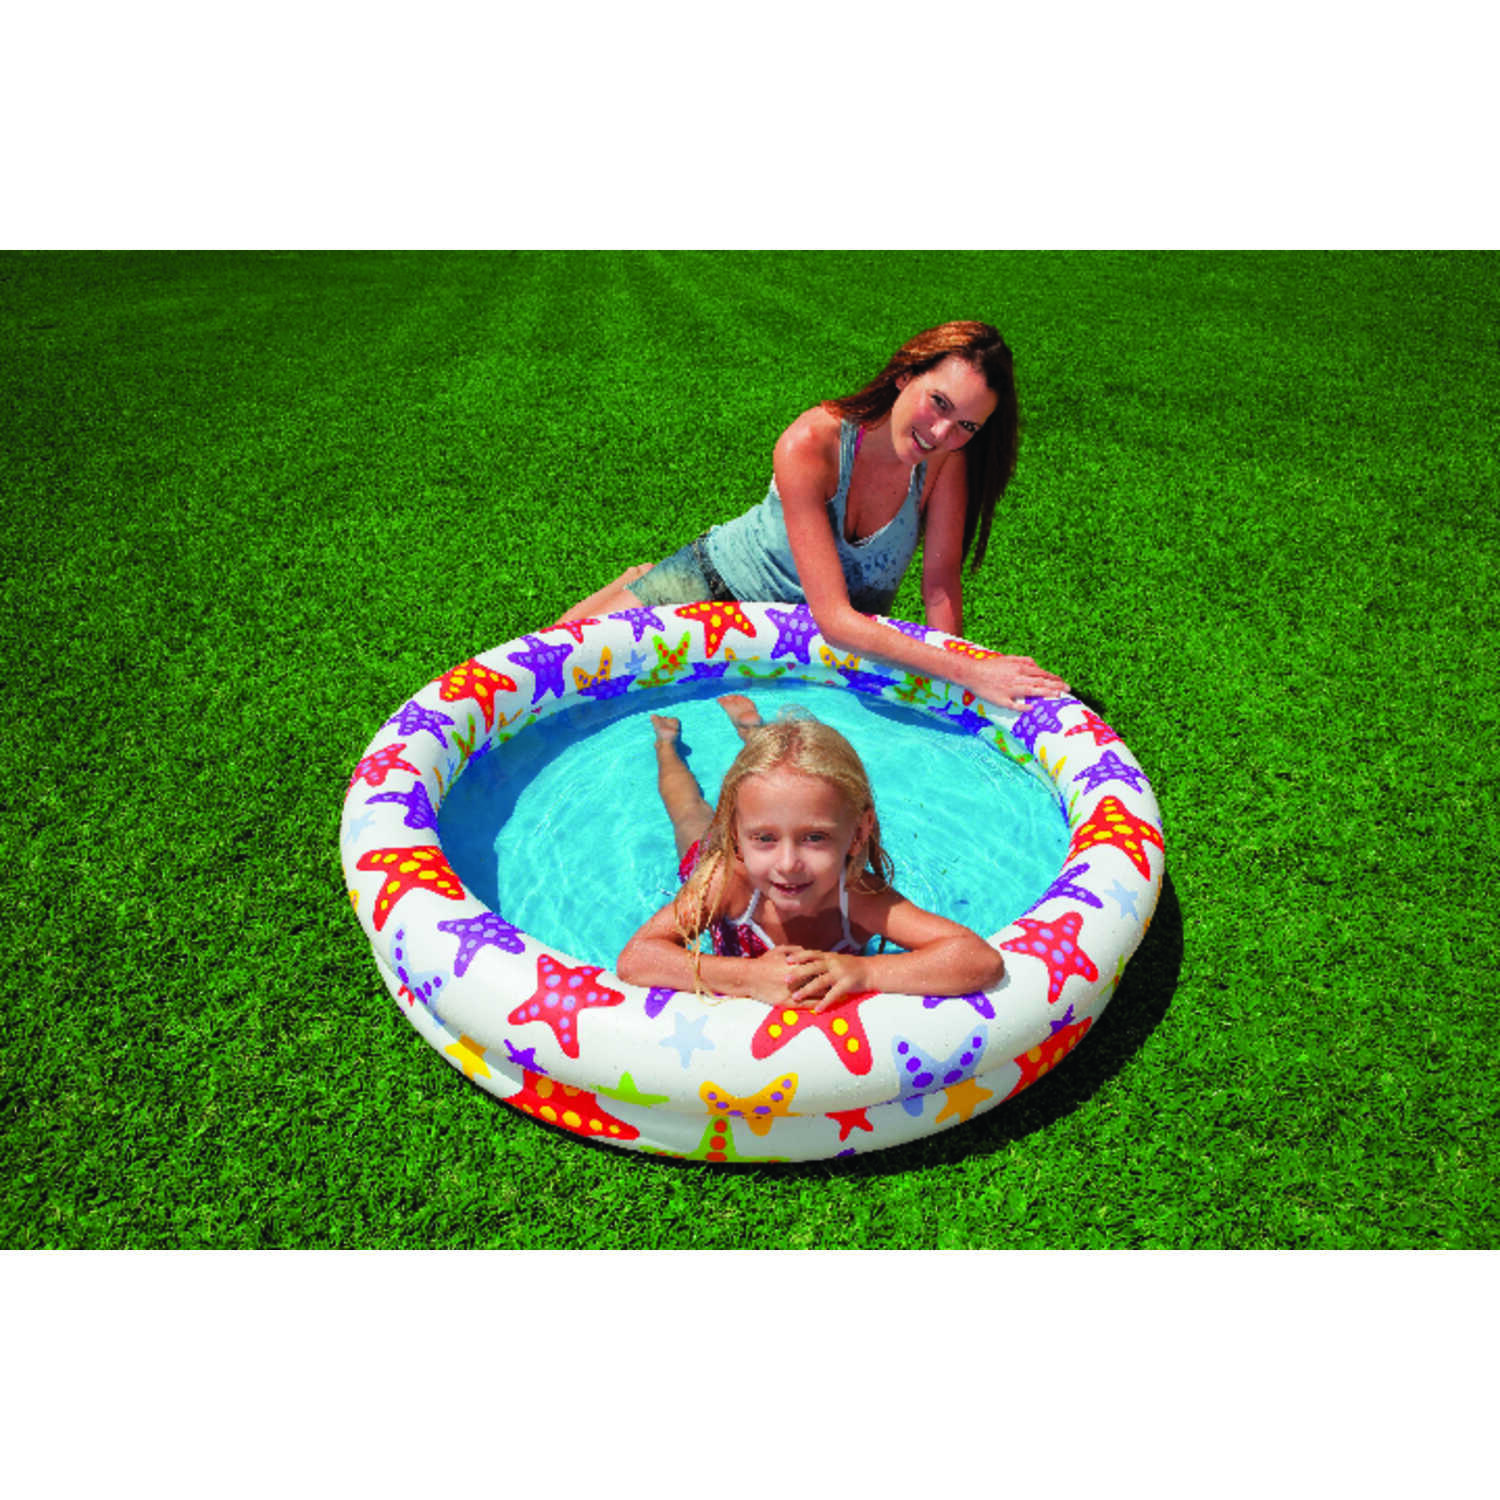 Intex  35 gal. Round  Inflatable Pool  10 in. H x 48 in. Dia.